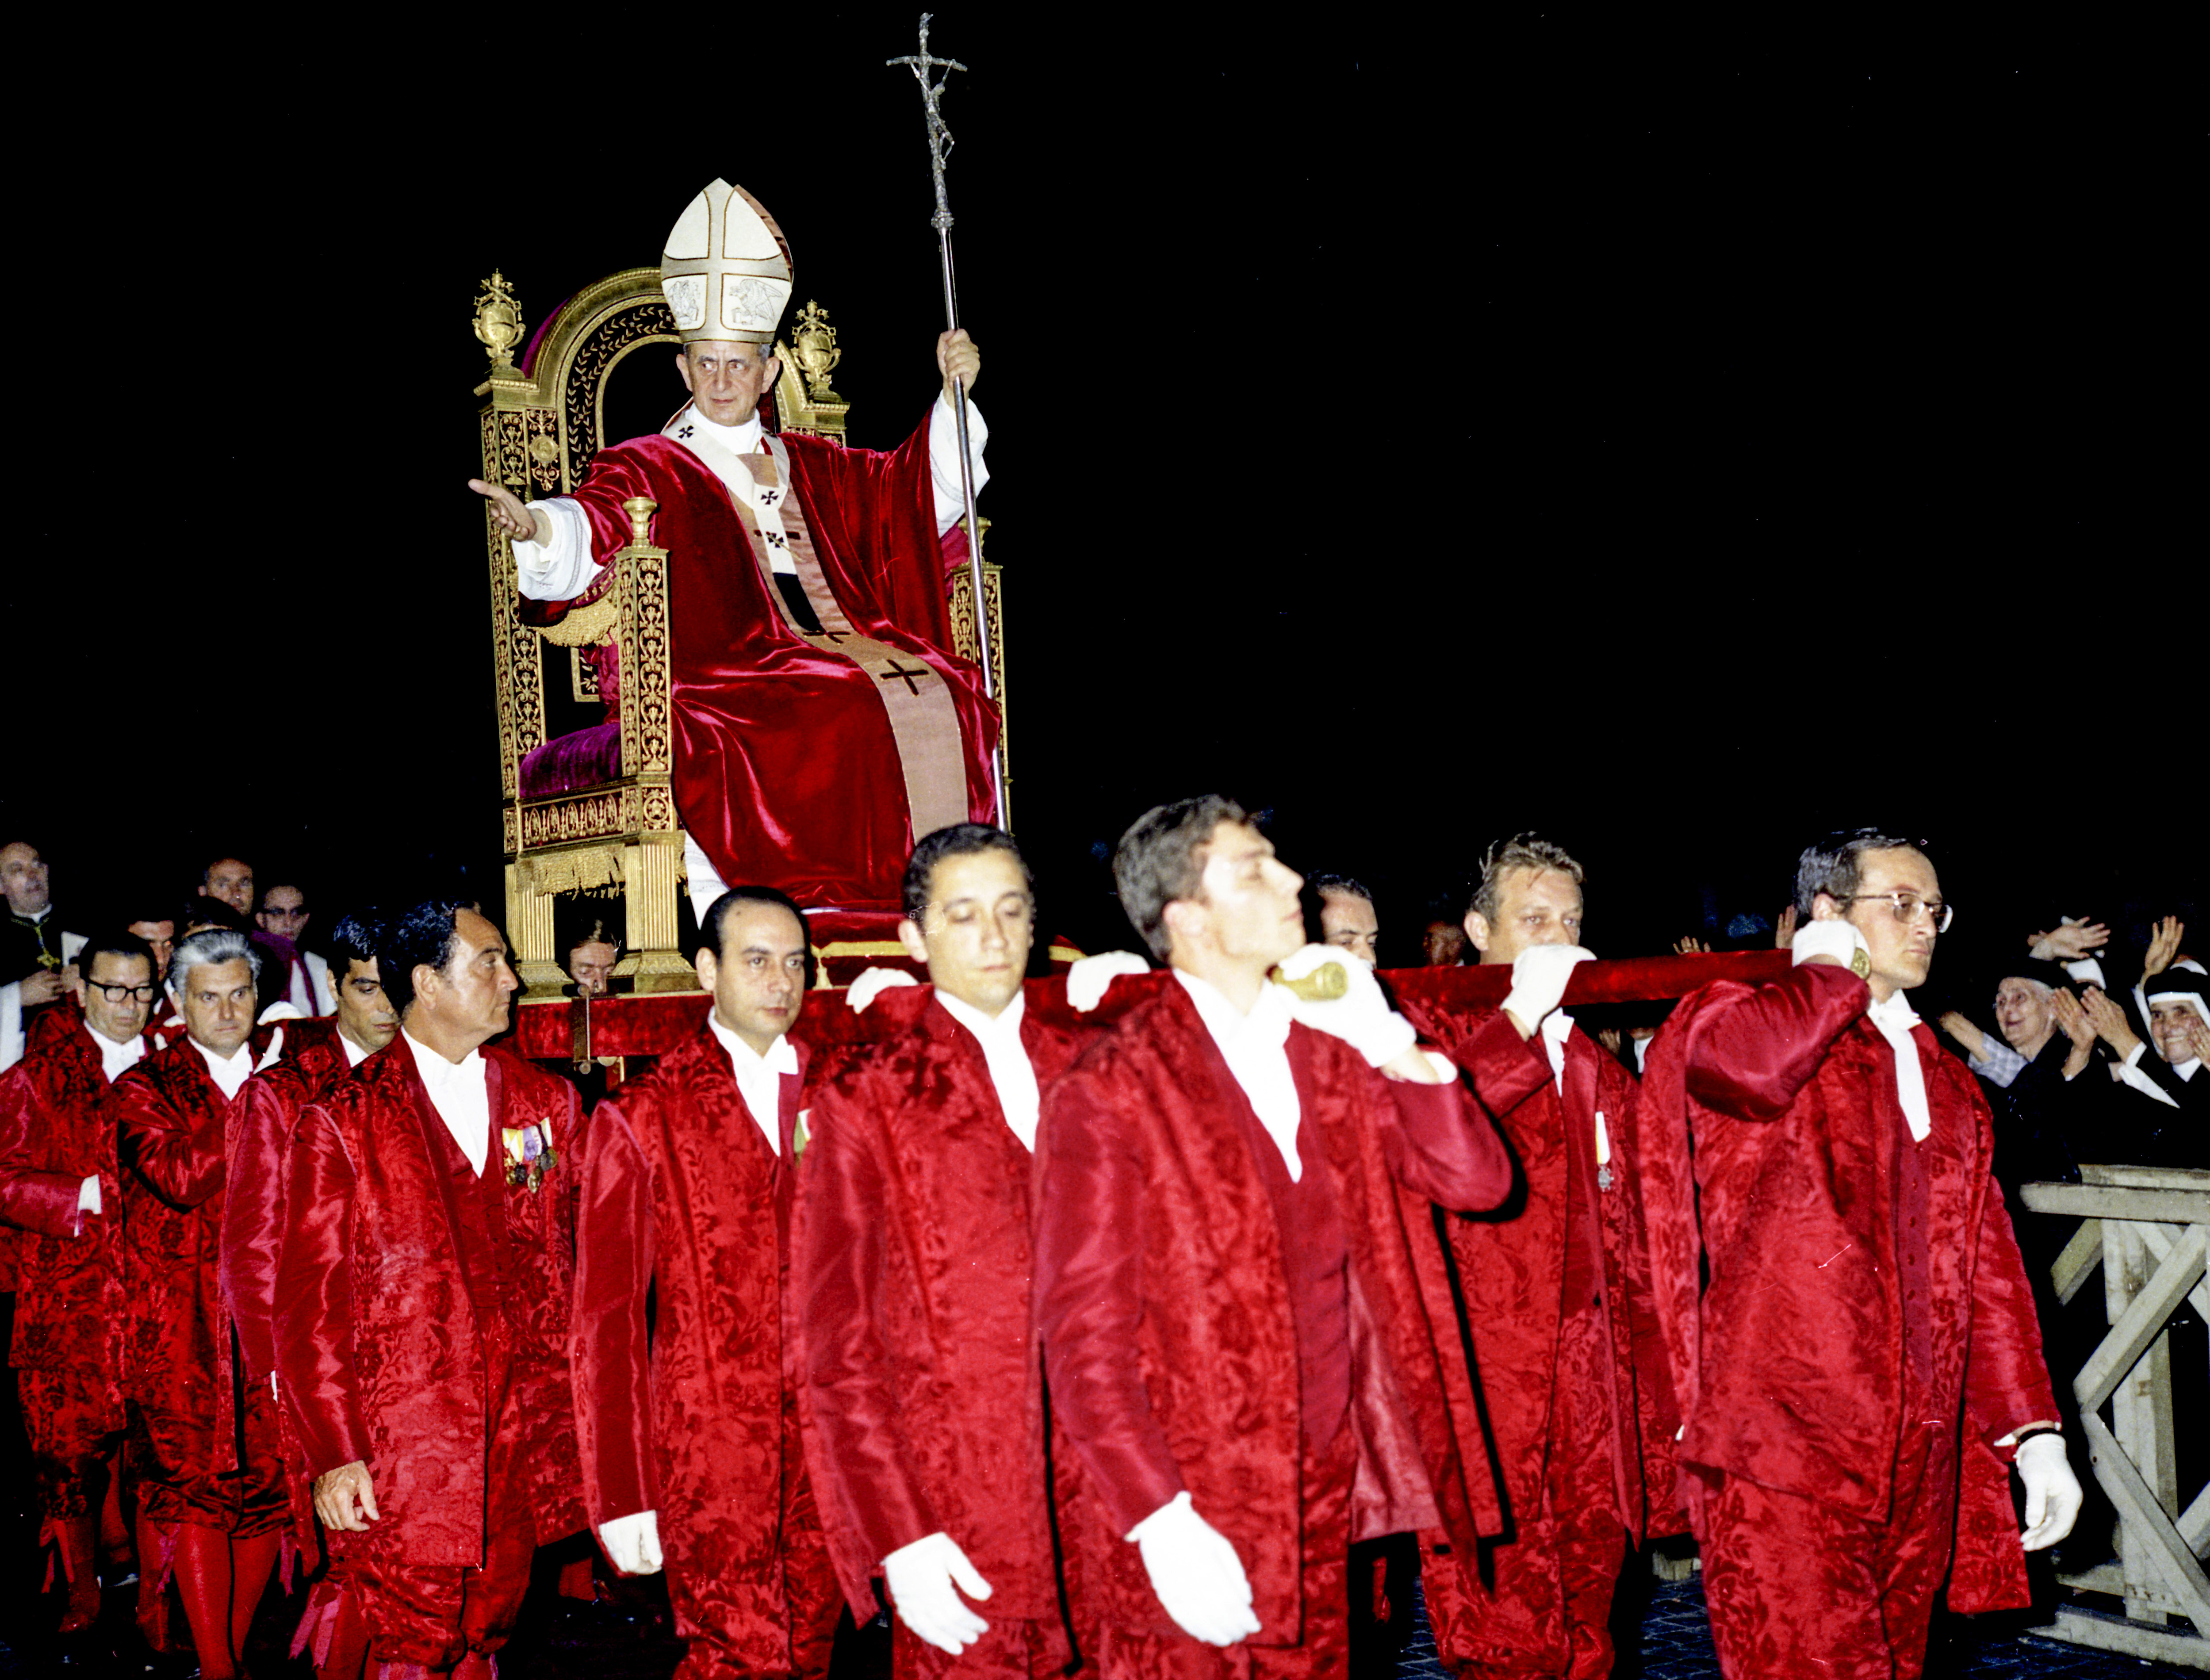 Pope Paul VI is carried in procession